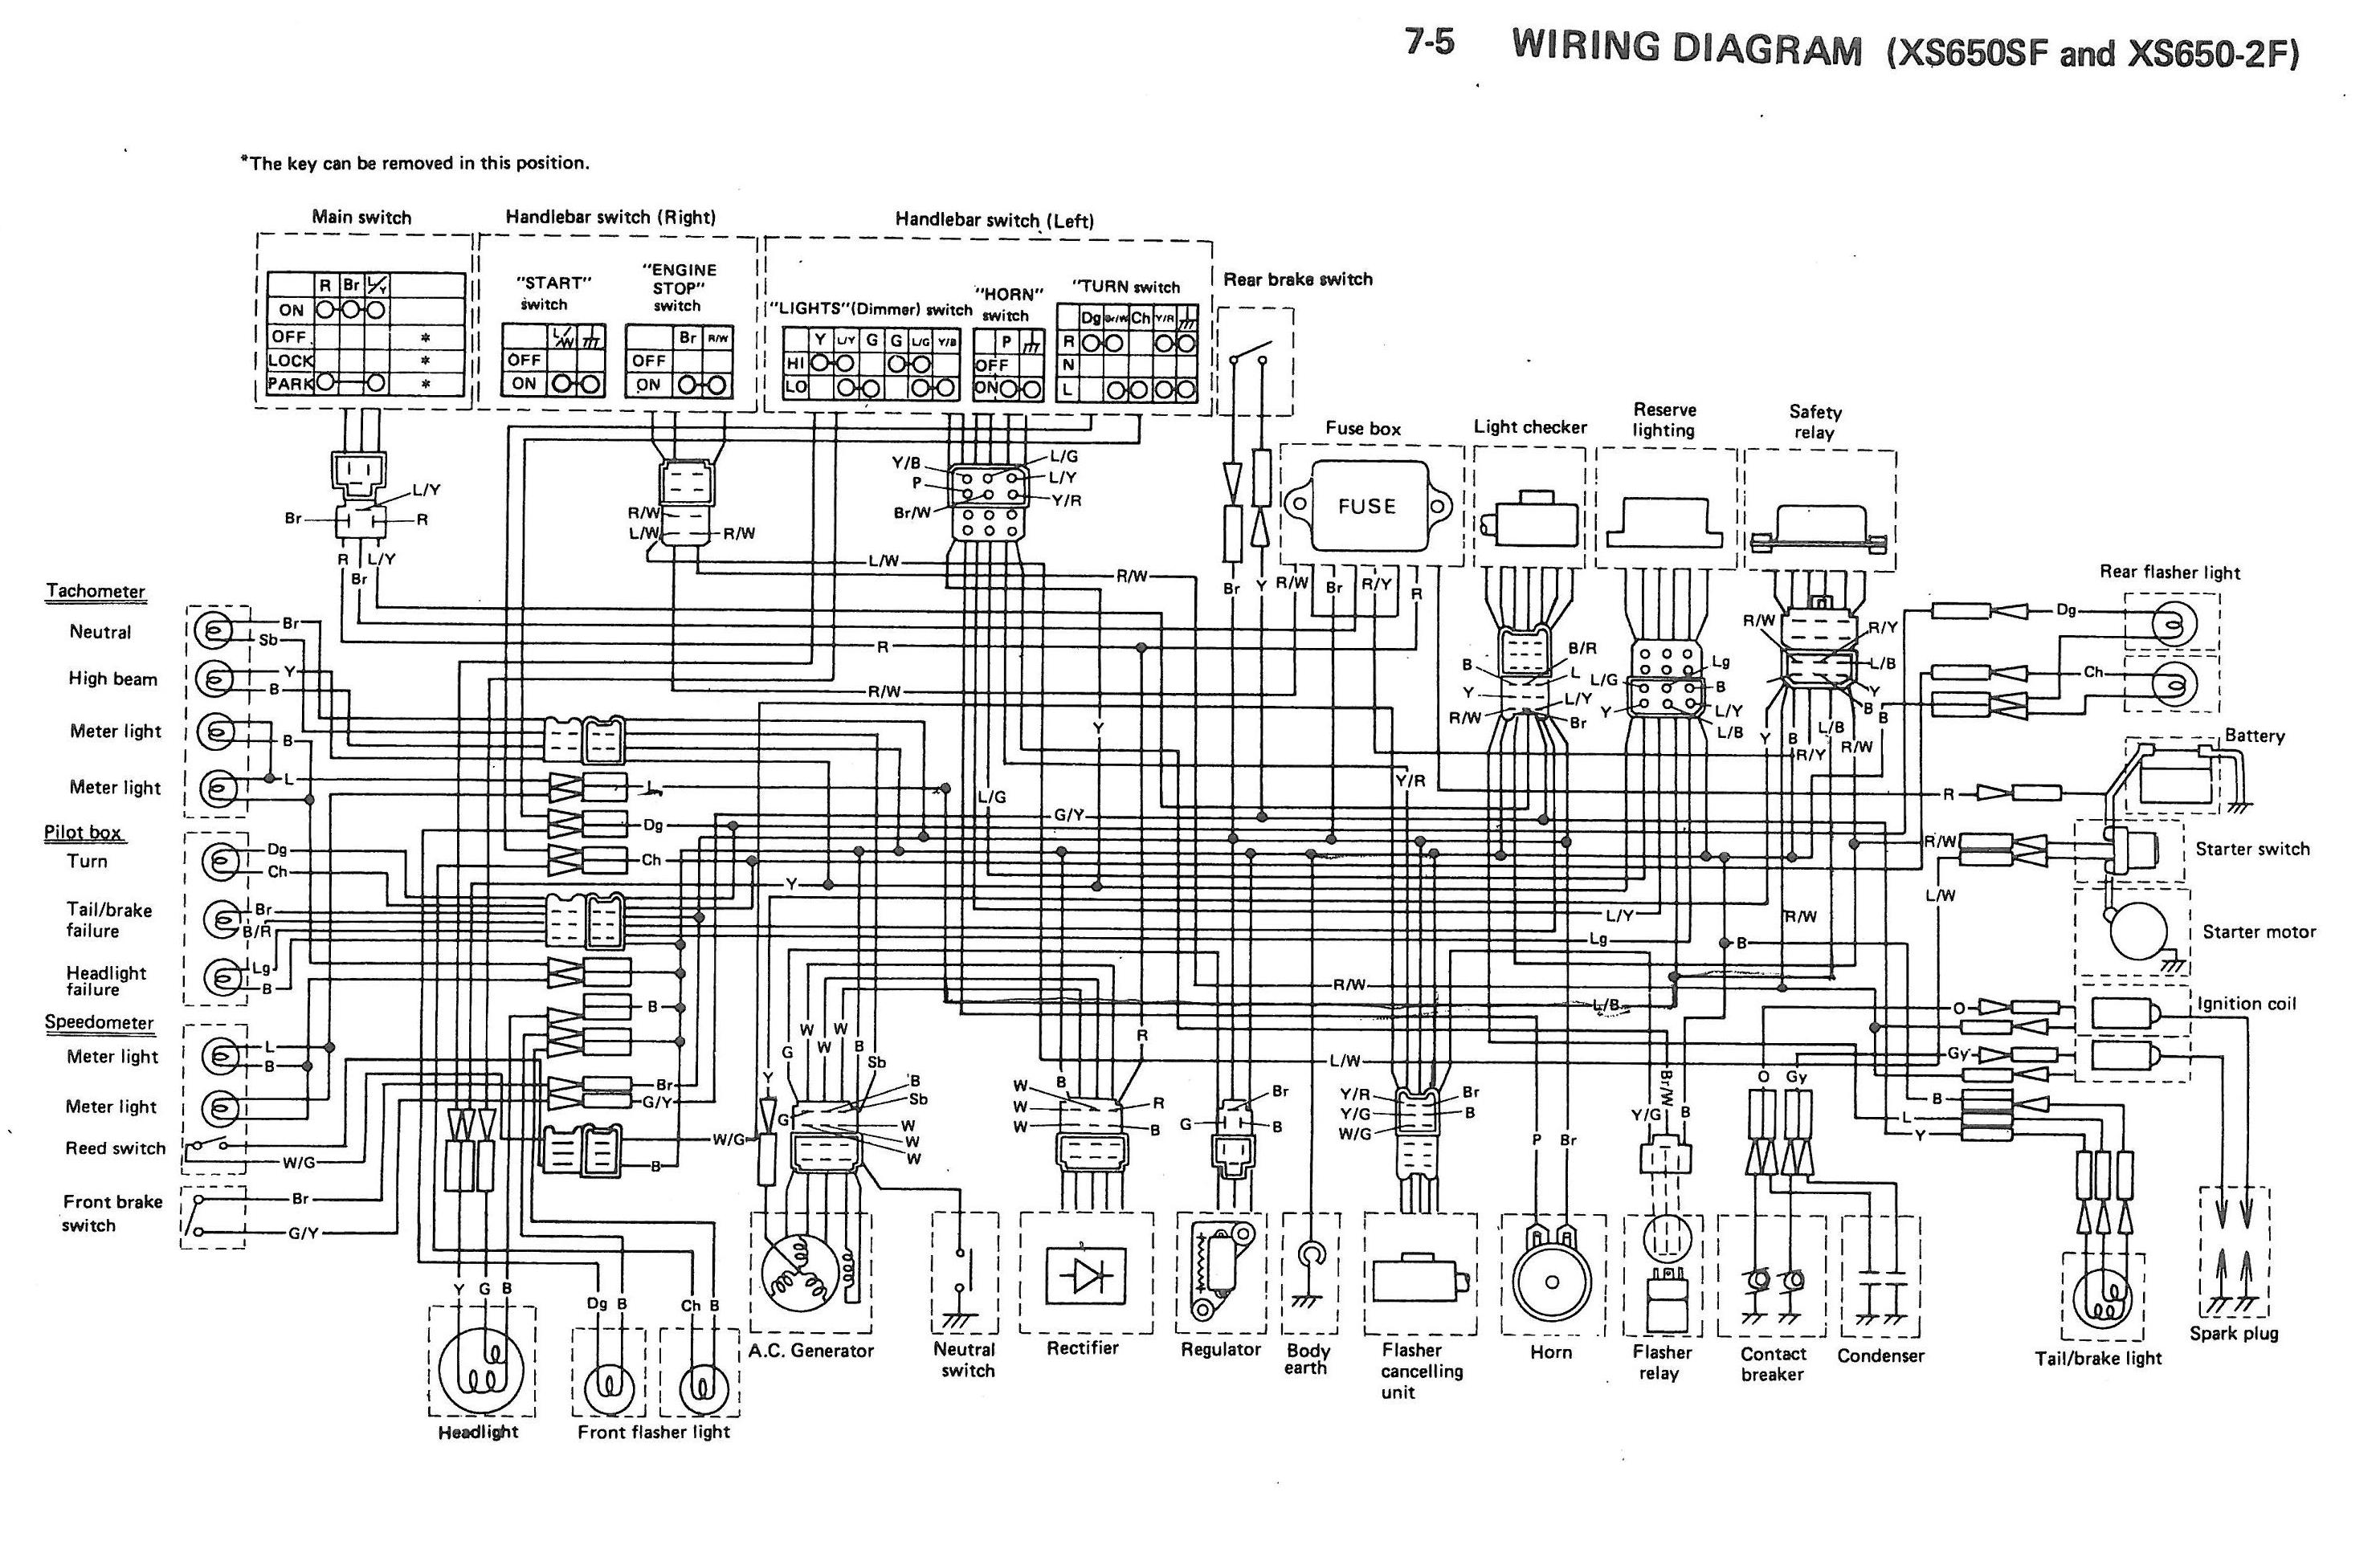 1980 xs650 wiring diagram wiring diagram for light switch u2022 rh  prestonfarmmotors co Stock XS650 Wiring Harness Diagram 1972 XS650 Chopper  Wiring Harness